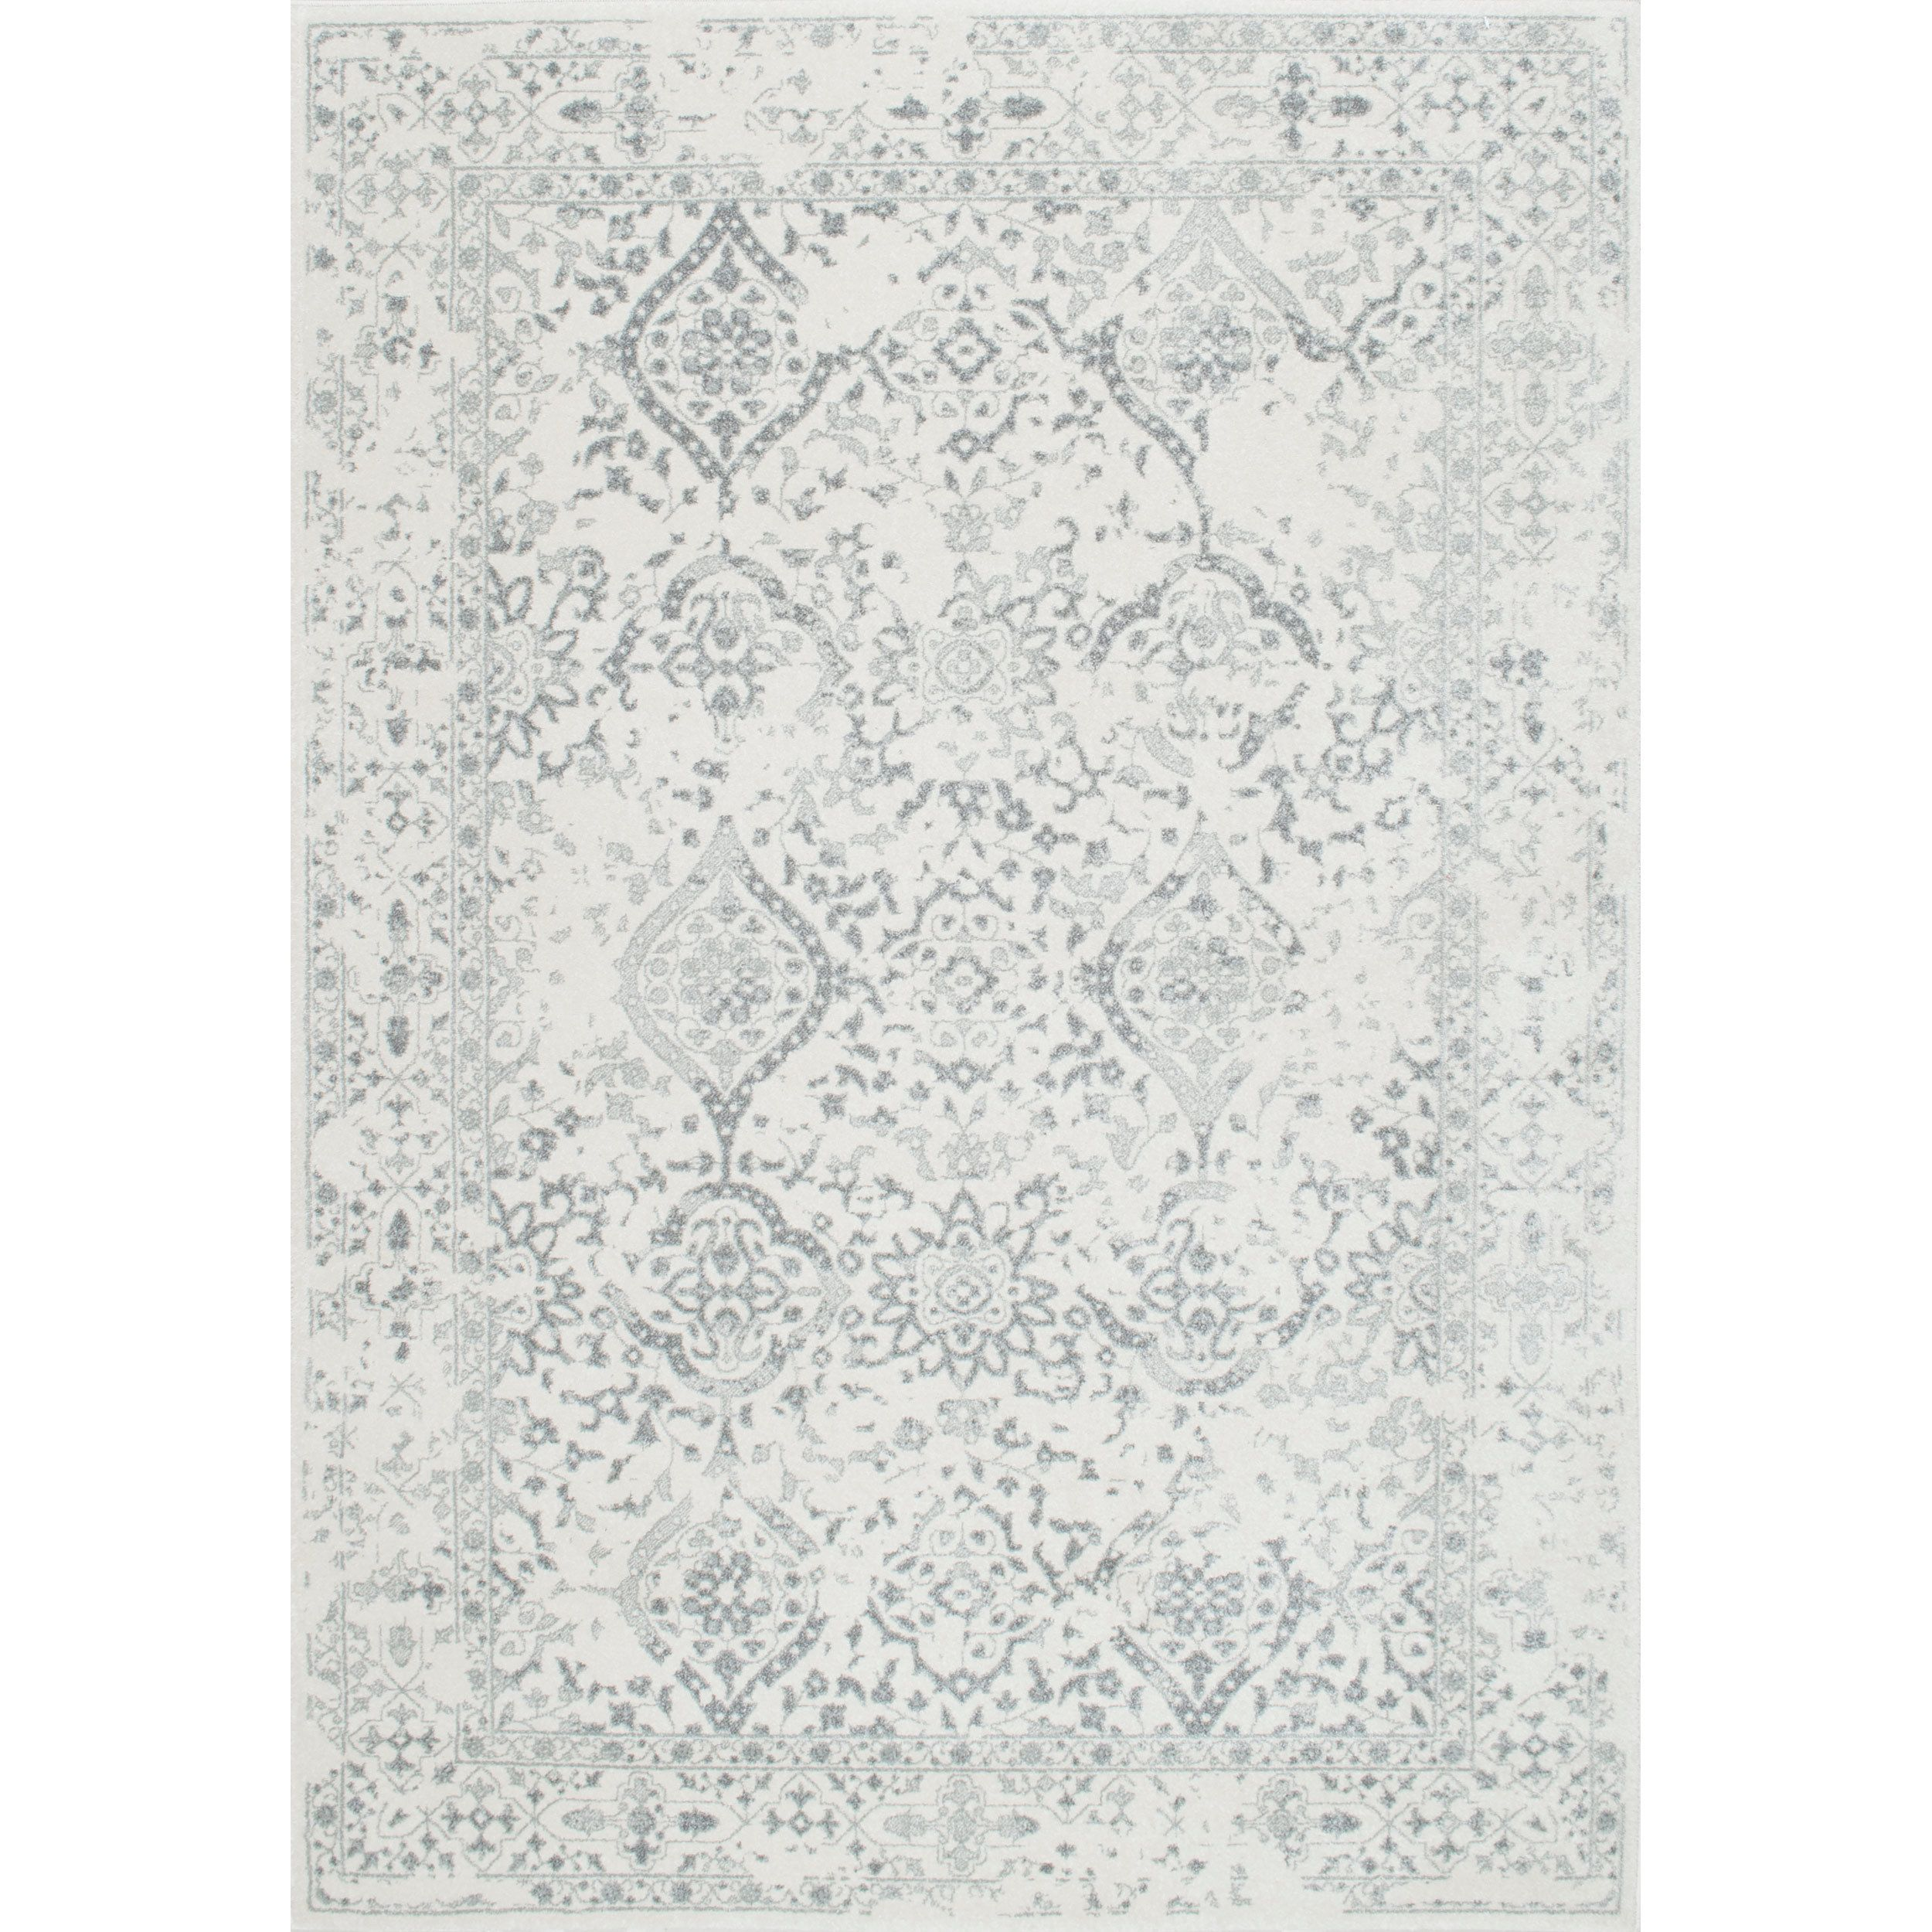 Youu0027ll love the Vintage Mabelle Ivory/Grey Area Rug at Wayfair - Great Deals  on all Décor products with Free Shipping on most stuff, even the big stuff.